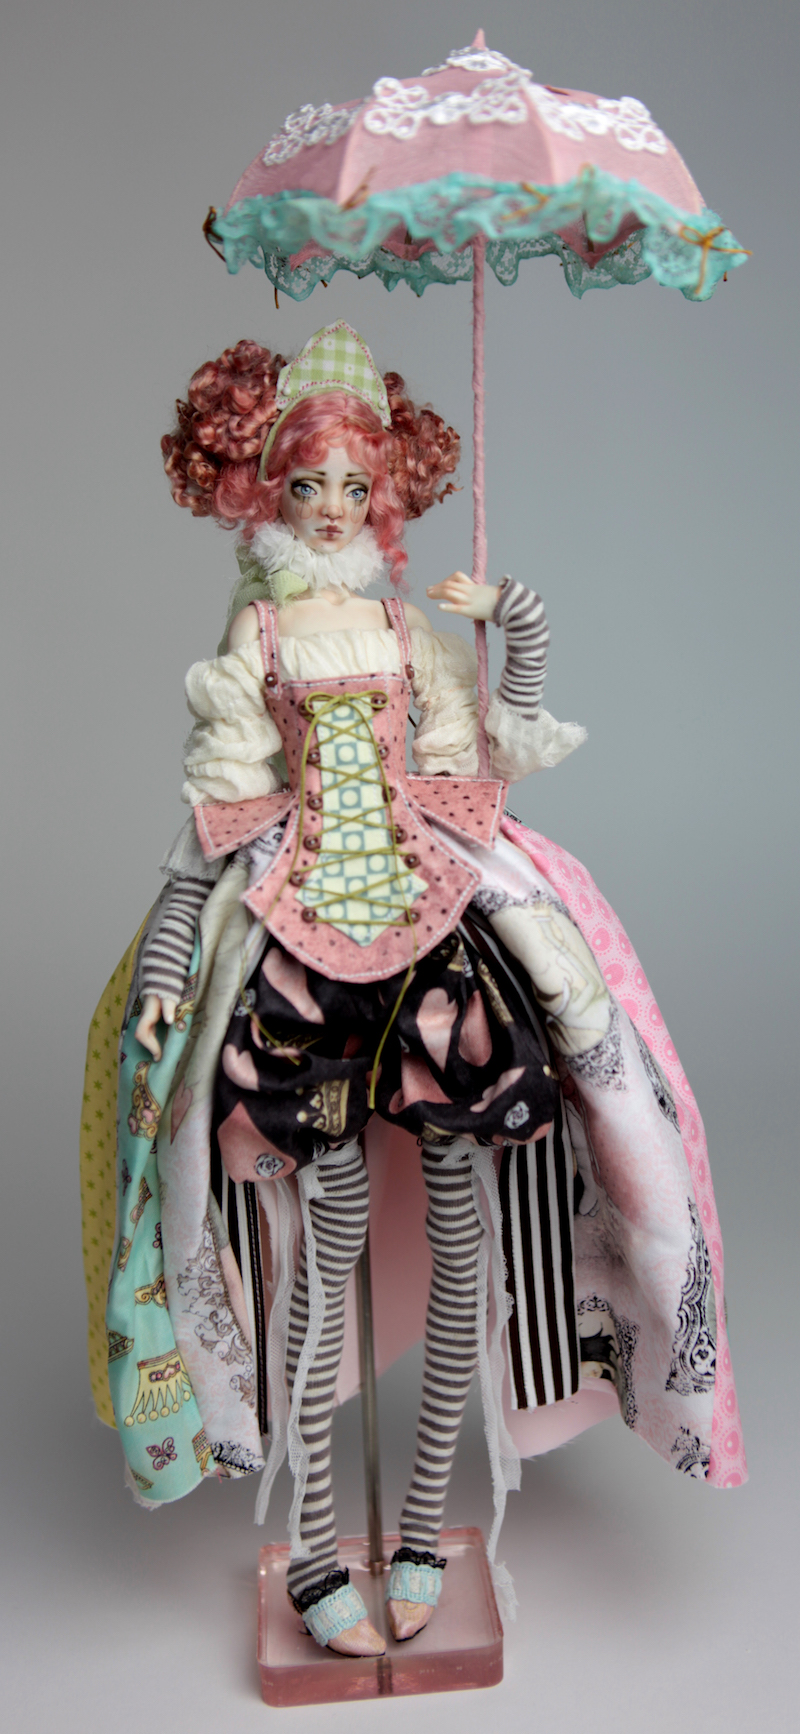 BJD Doll Ball Jointed Victorian Cotton Candy 4 15 Victorian Strawberry Clown Porcelain BJD Doll Luna